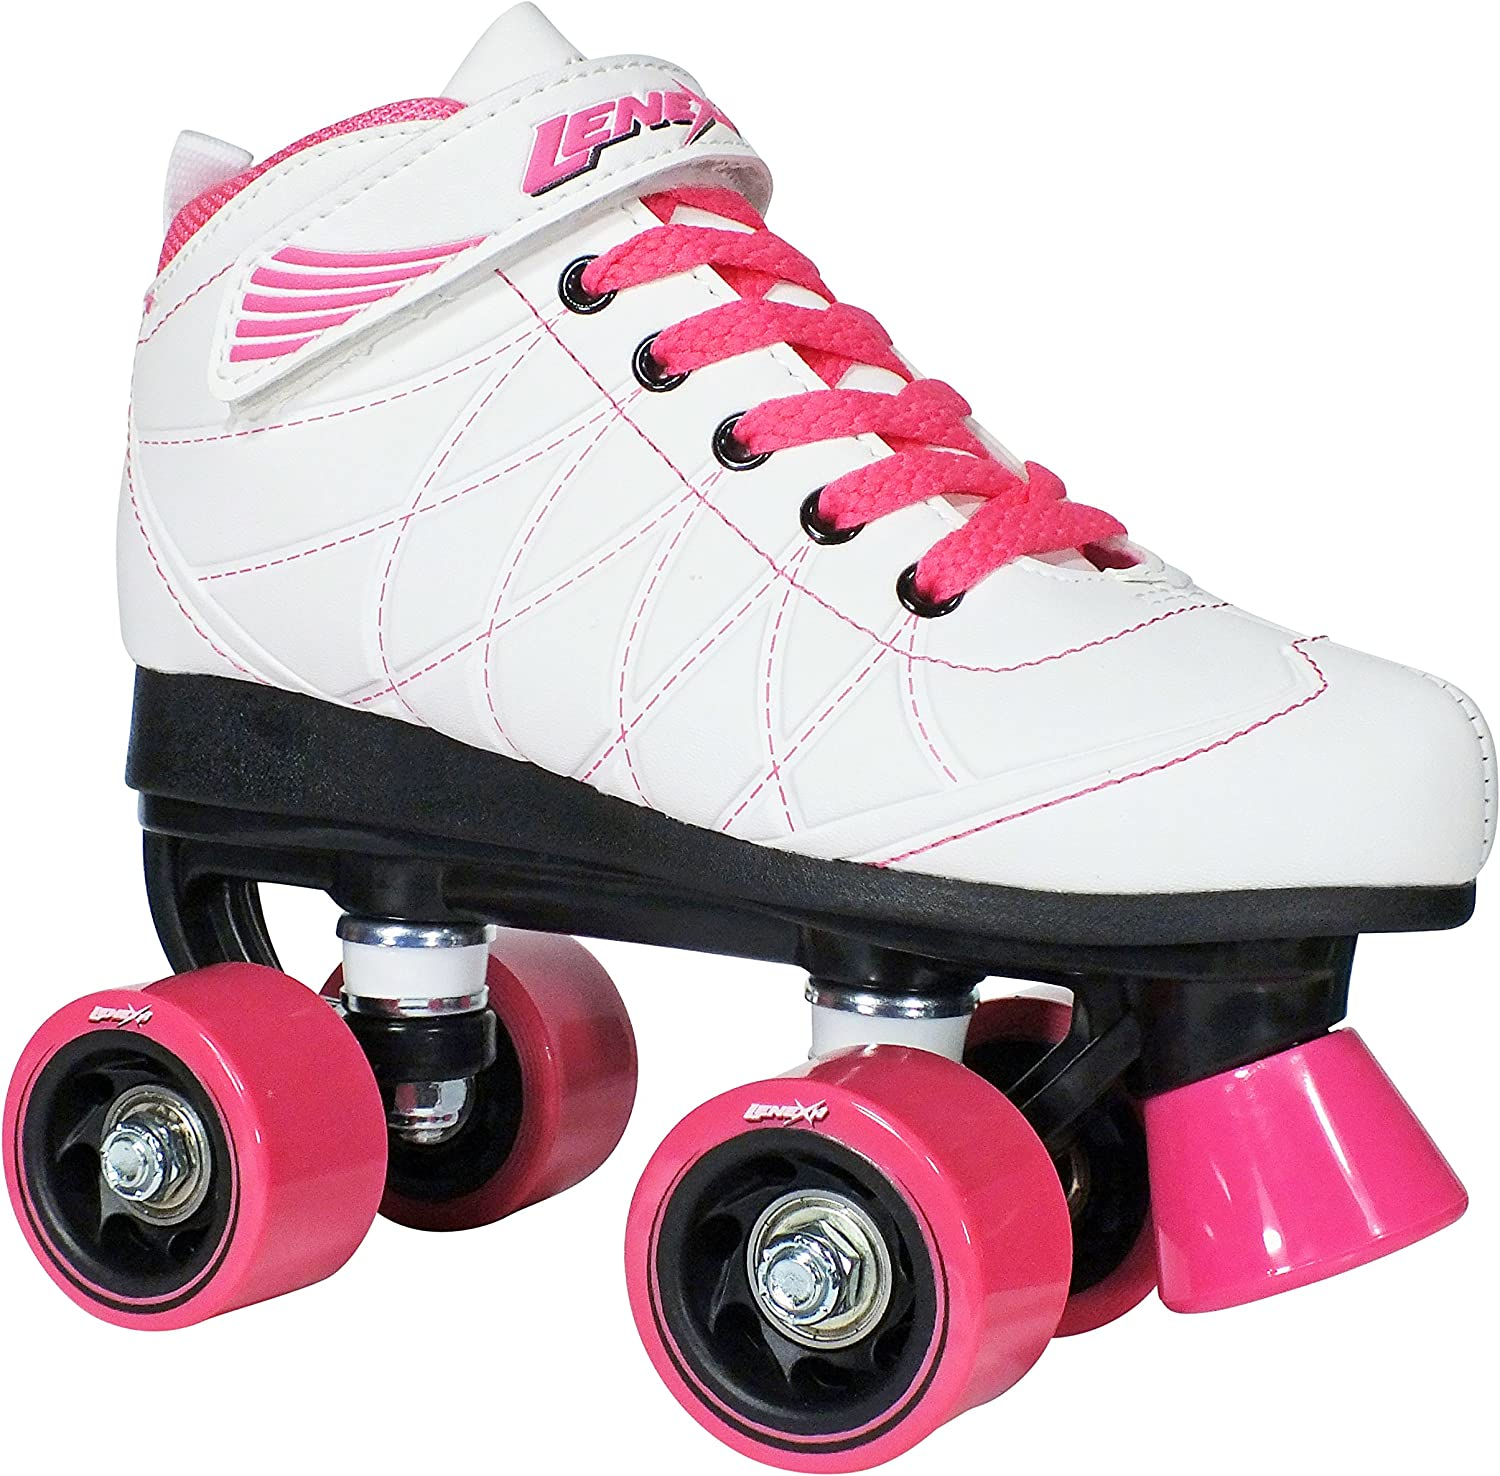 Lenexa Hoopla Kids Roller Skates for Kids Children – Girls and Boys – Kids Rollerskates – Childrens Quad Derby Roller Skate for Youths Boy Girl – Kids Skates White w Pink Wheels